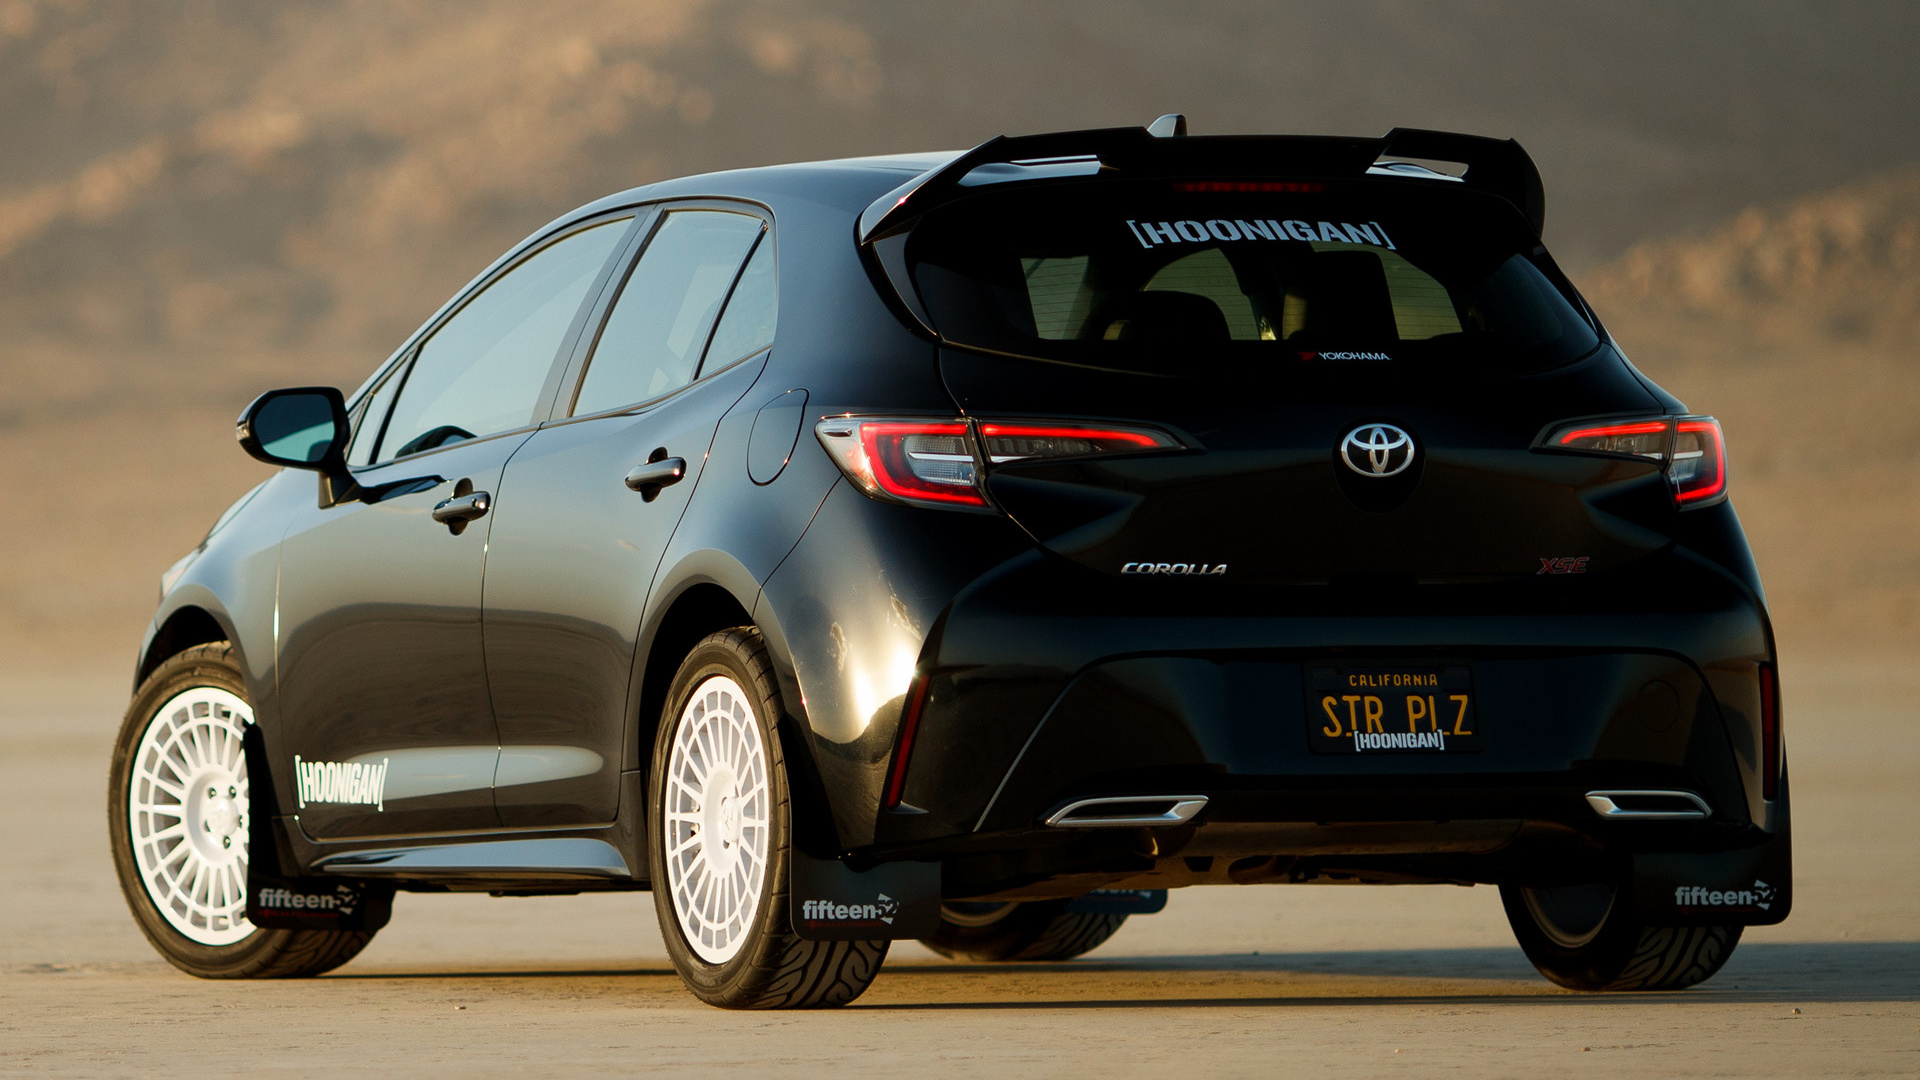 Toyota Auris Hb besides Toyota Land Cruiser Wd Natl Steering Wheel L moreover Toyota Corolla Hoonigan Wallpaper Hd moreover Maxresdefault additionally Xs S Toyota Corolla Le. on 2013 toyota corolla hatchback